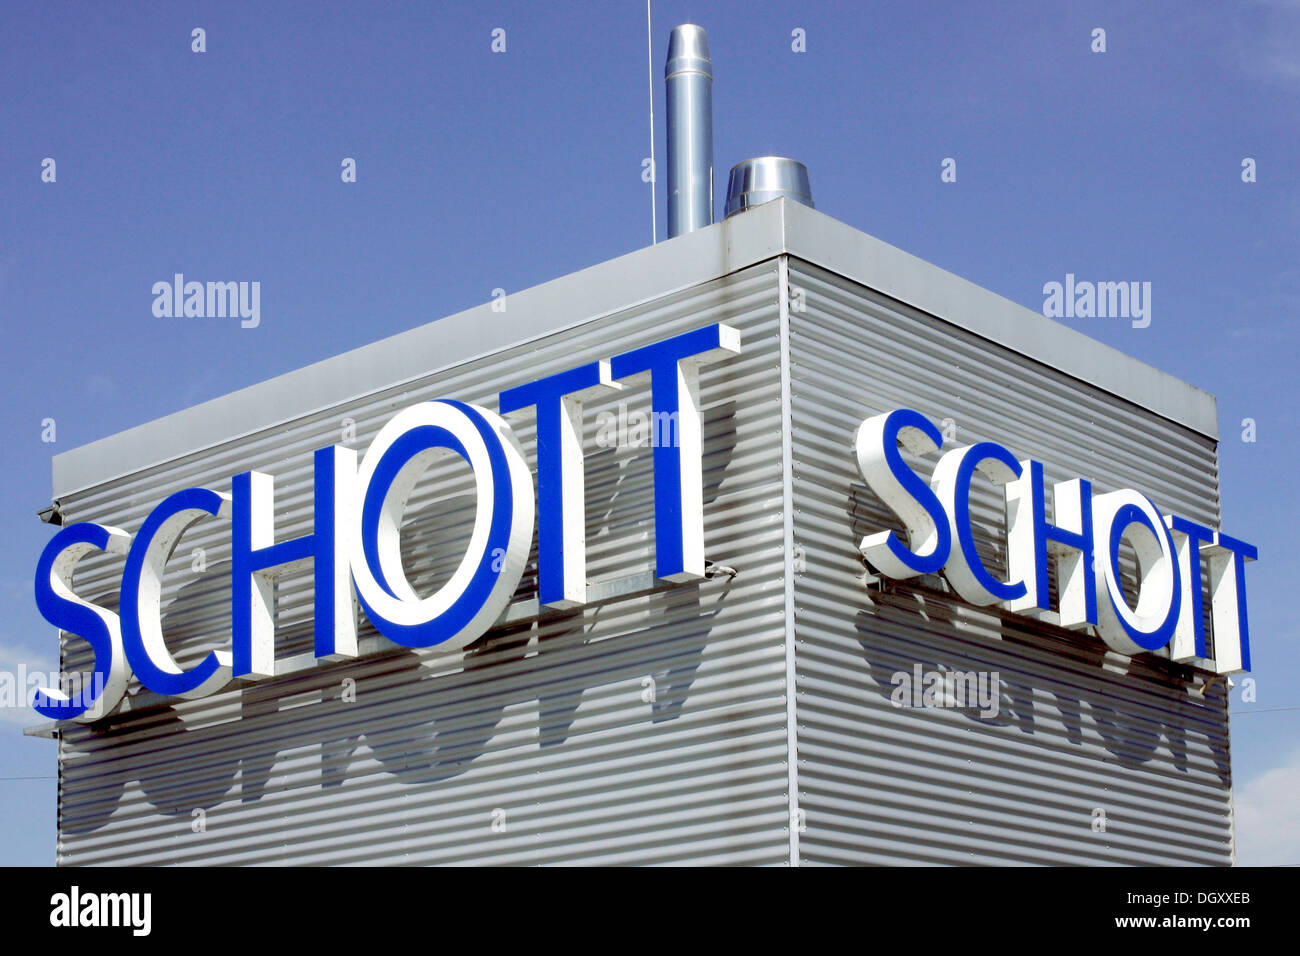 Company Logo Of The Schott Ag On The Company Grounds Of Schott Stock